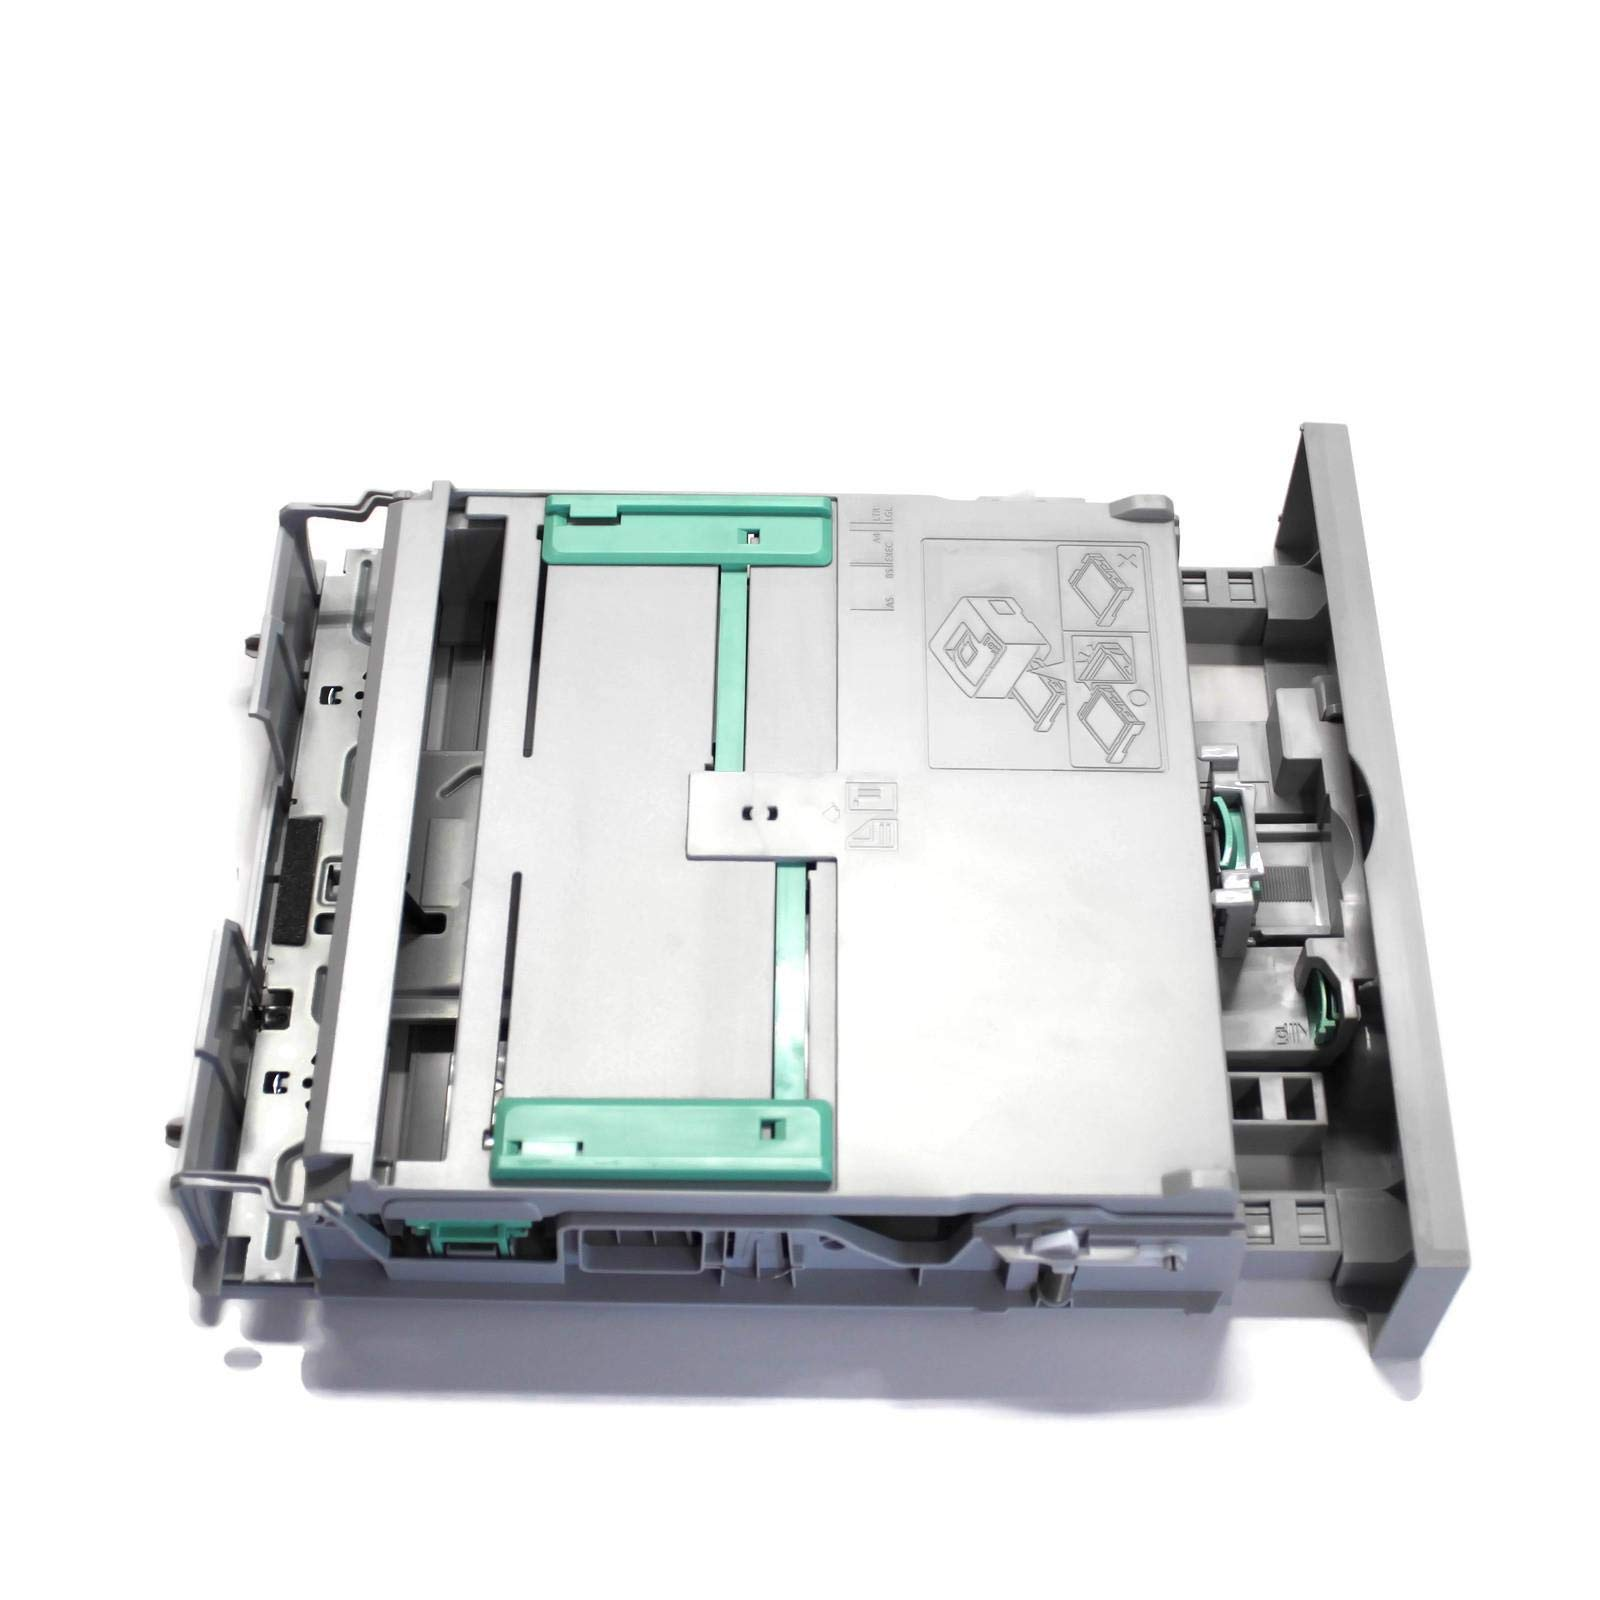 TM-toner Compatible Cassette Paper Tray JC90-01177A for Use in Samsung CLP-415N CLP-415NW CLX-4195FN CLX-4195FW CLX-4195N SLC-1810W SLC-1860FW